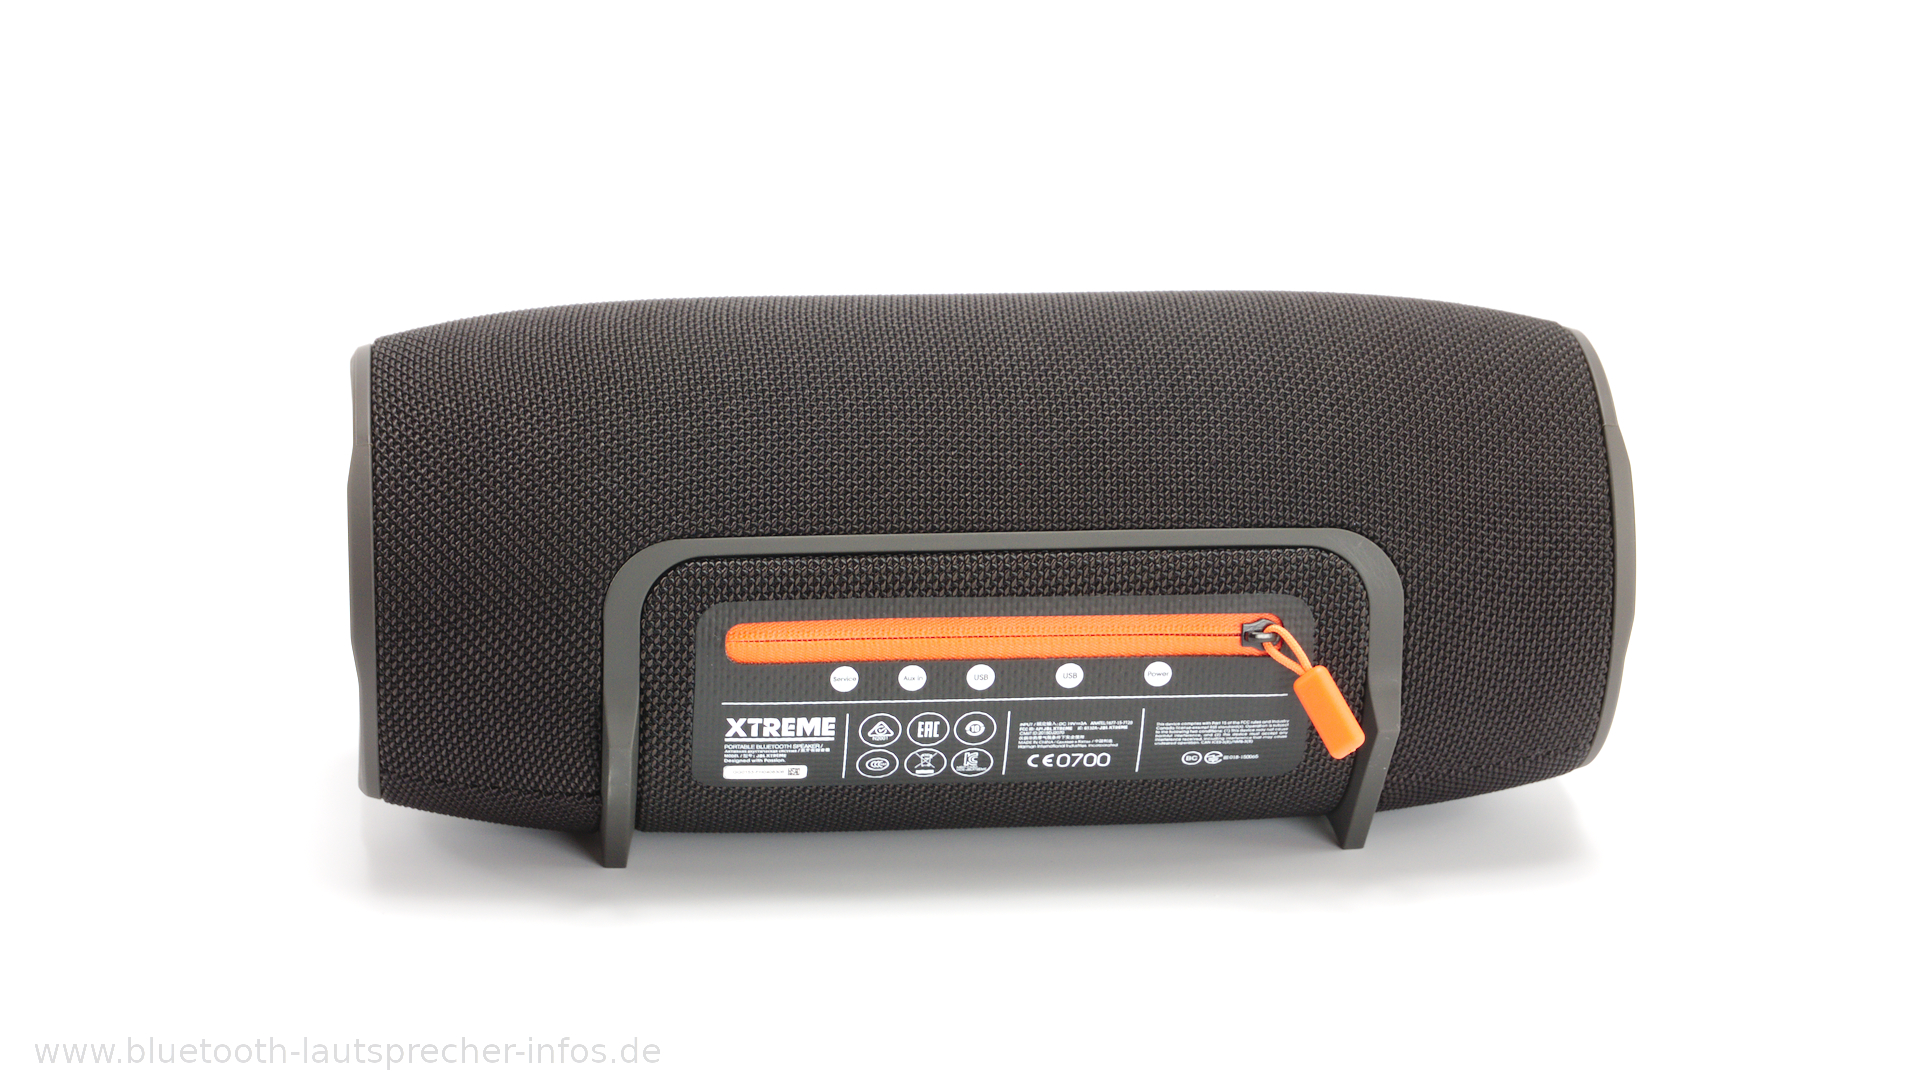 jbl xtreme im test gro er bluetooth lautsprecher mit. Black Bedroom Furniture Sets. Home Design Ideas